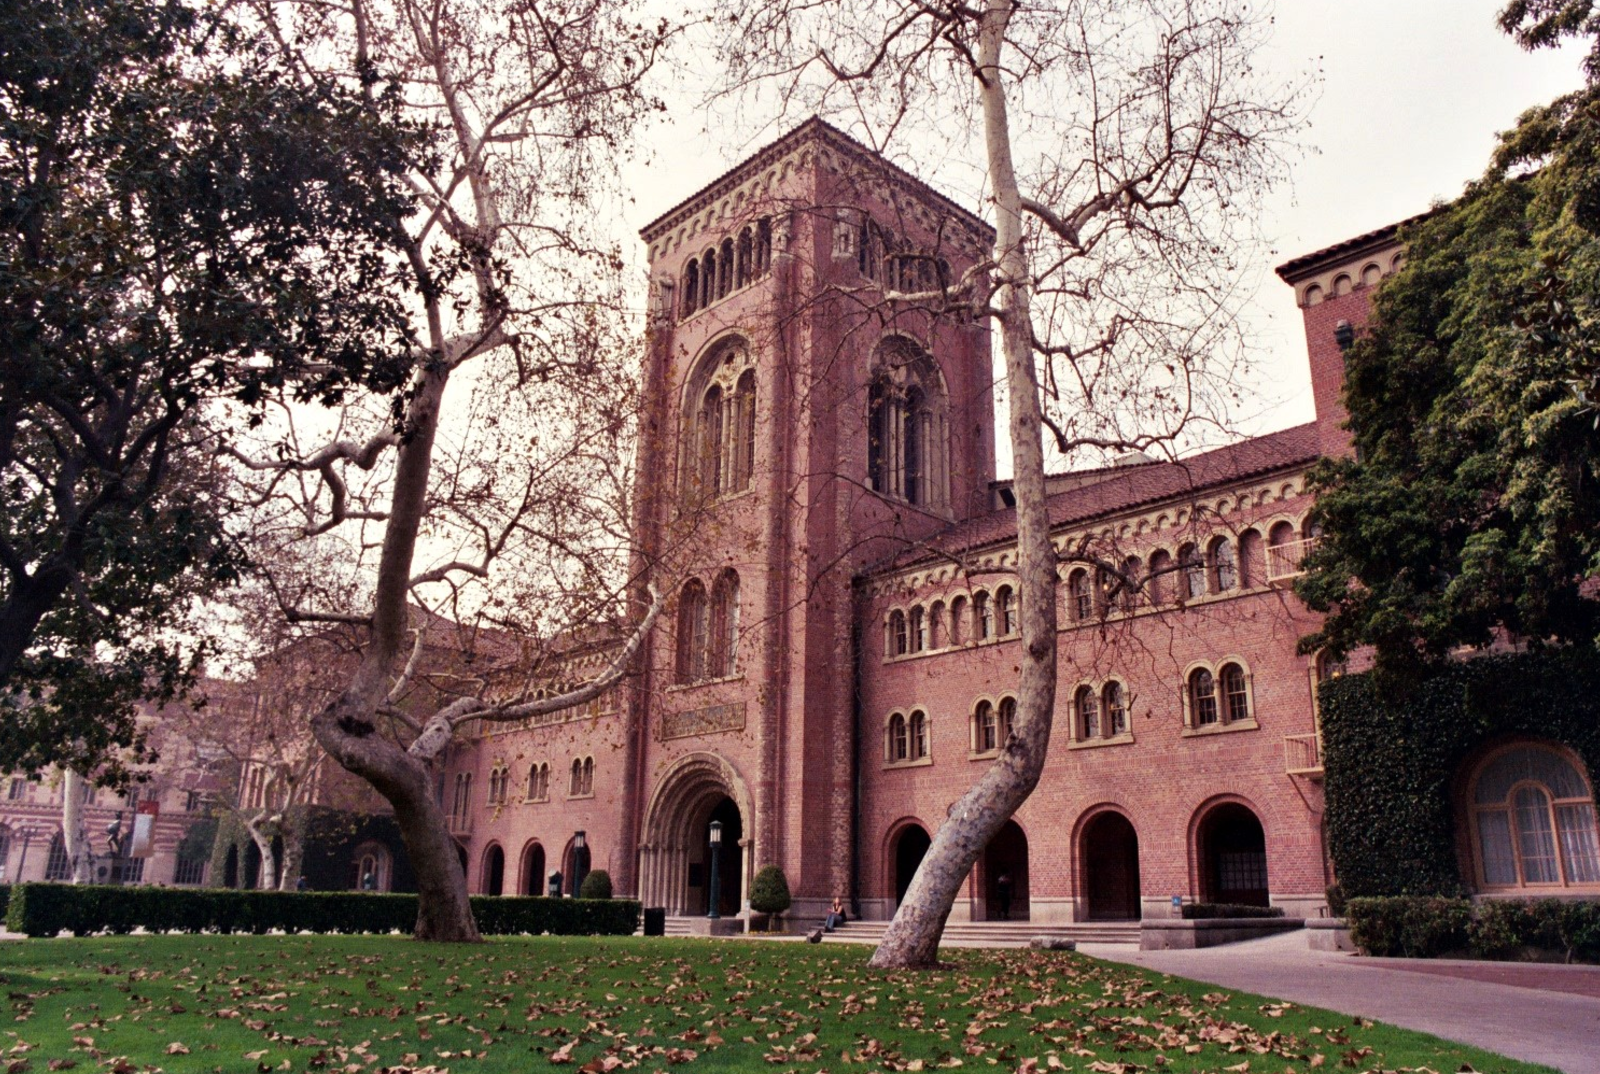 Decomposing Body of Jacob Kelley Found At USC Photo: WikiCommons, Brion Vibber, No Change